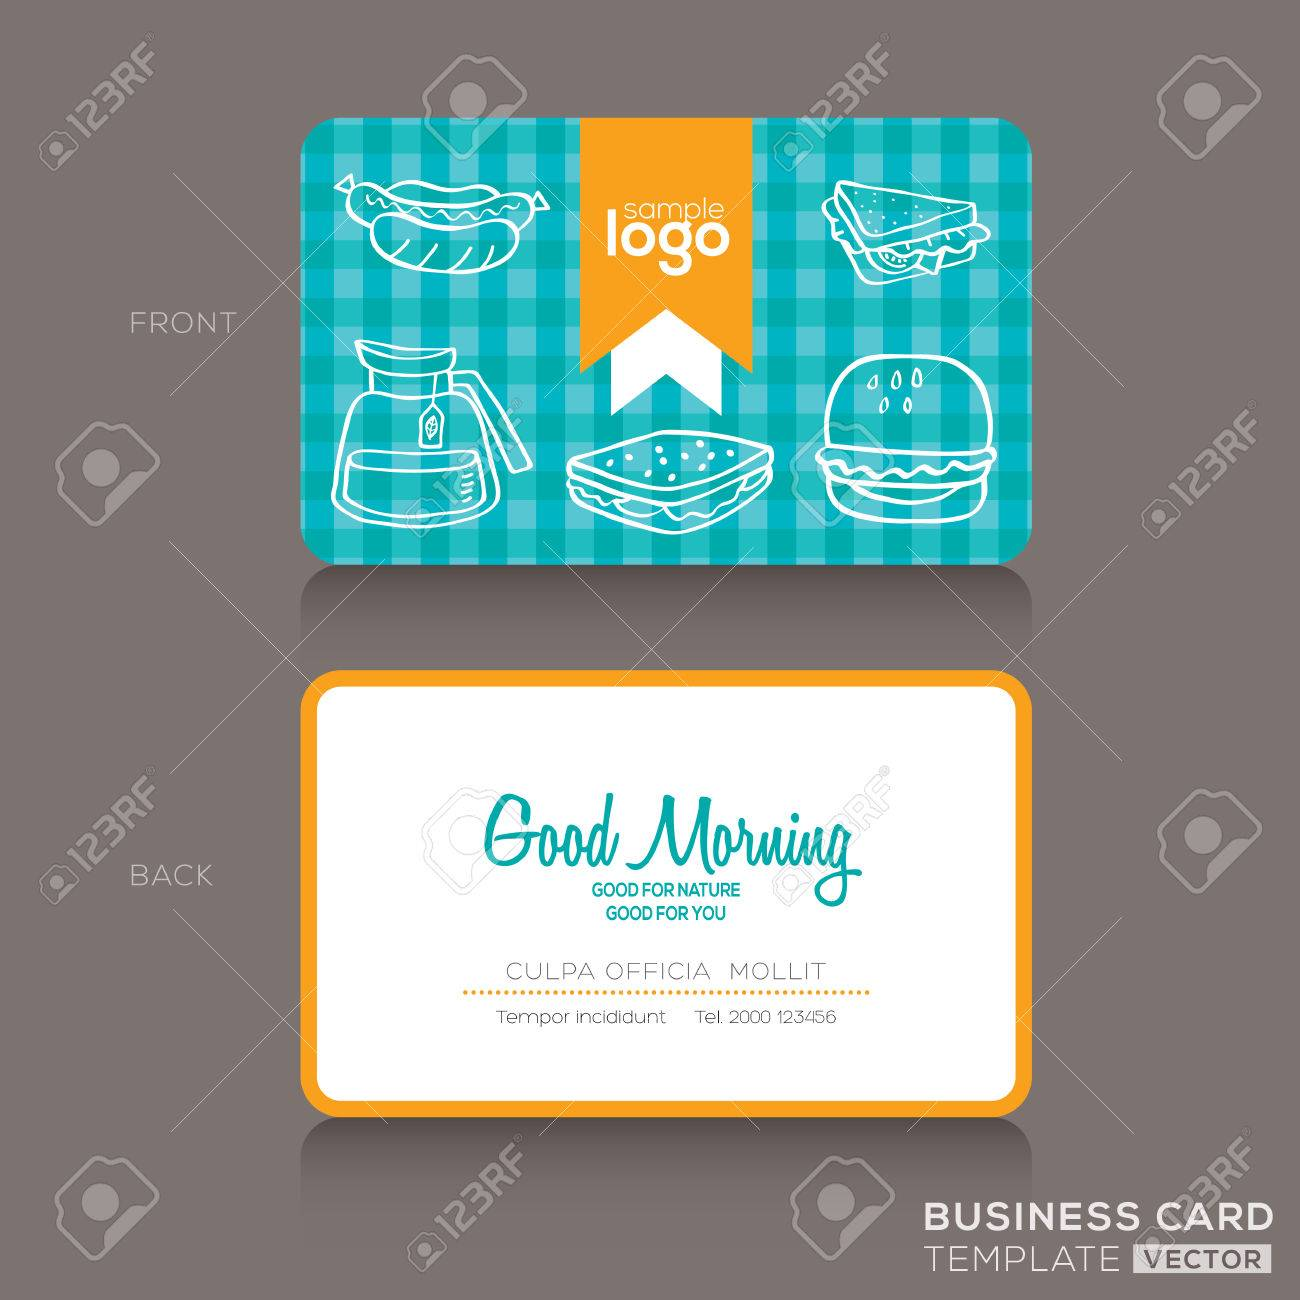 Business Cards Design Template For Bakery Shop Or Cafe Royalty ...